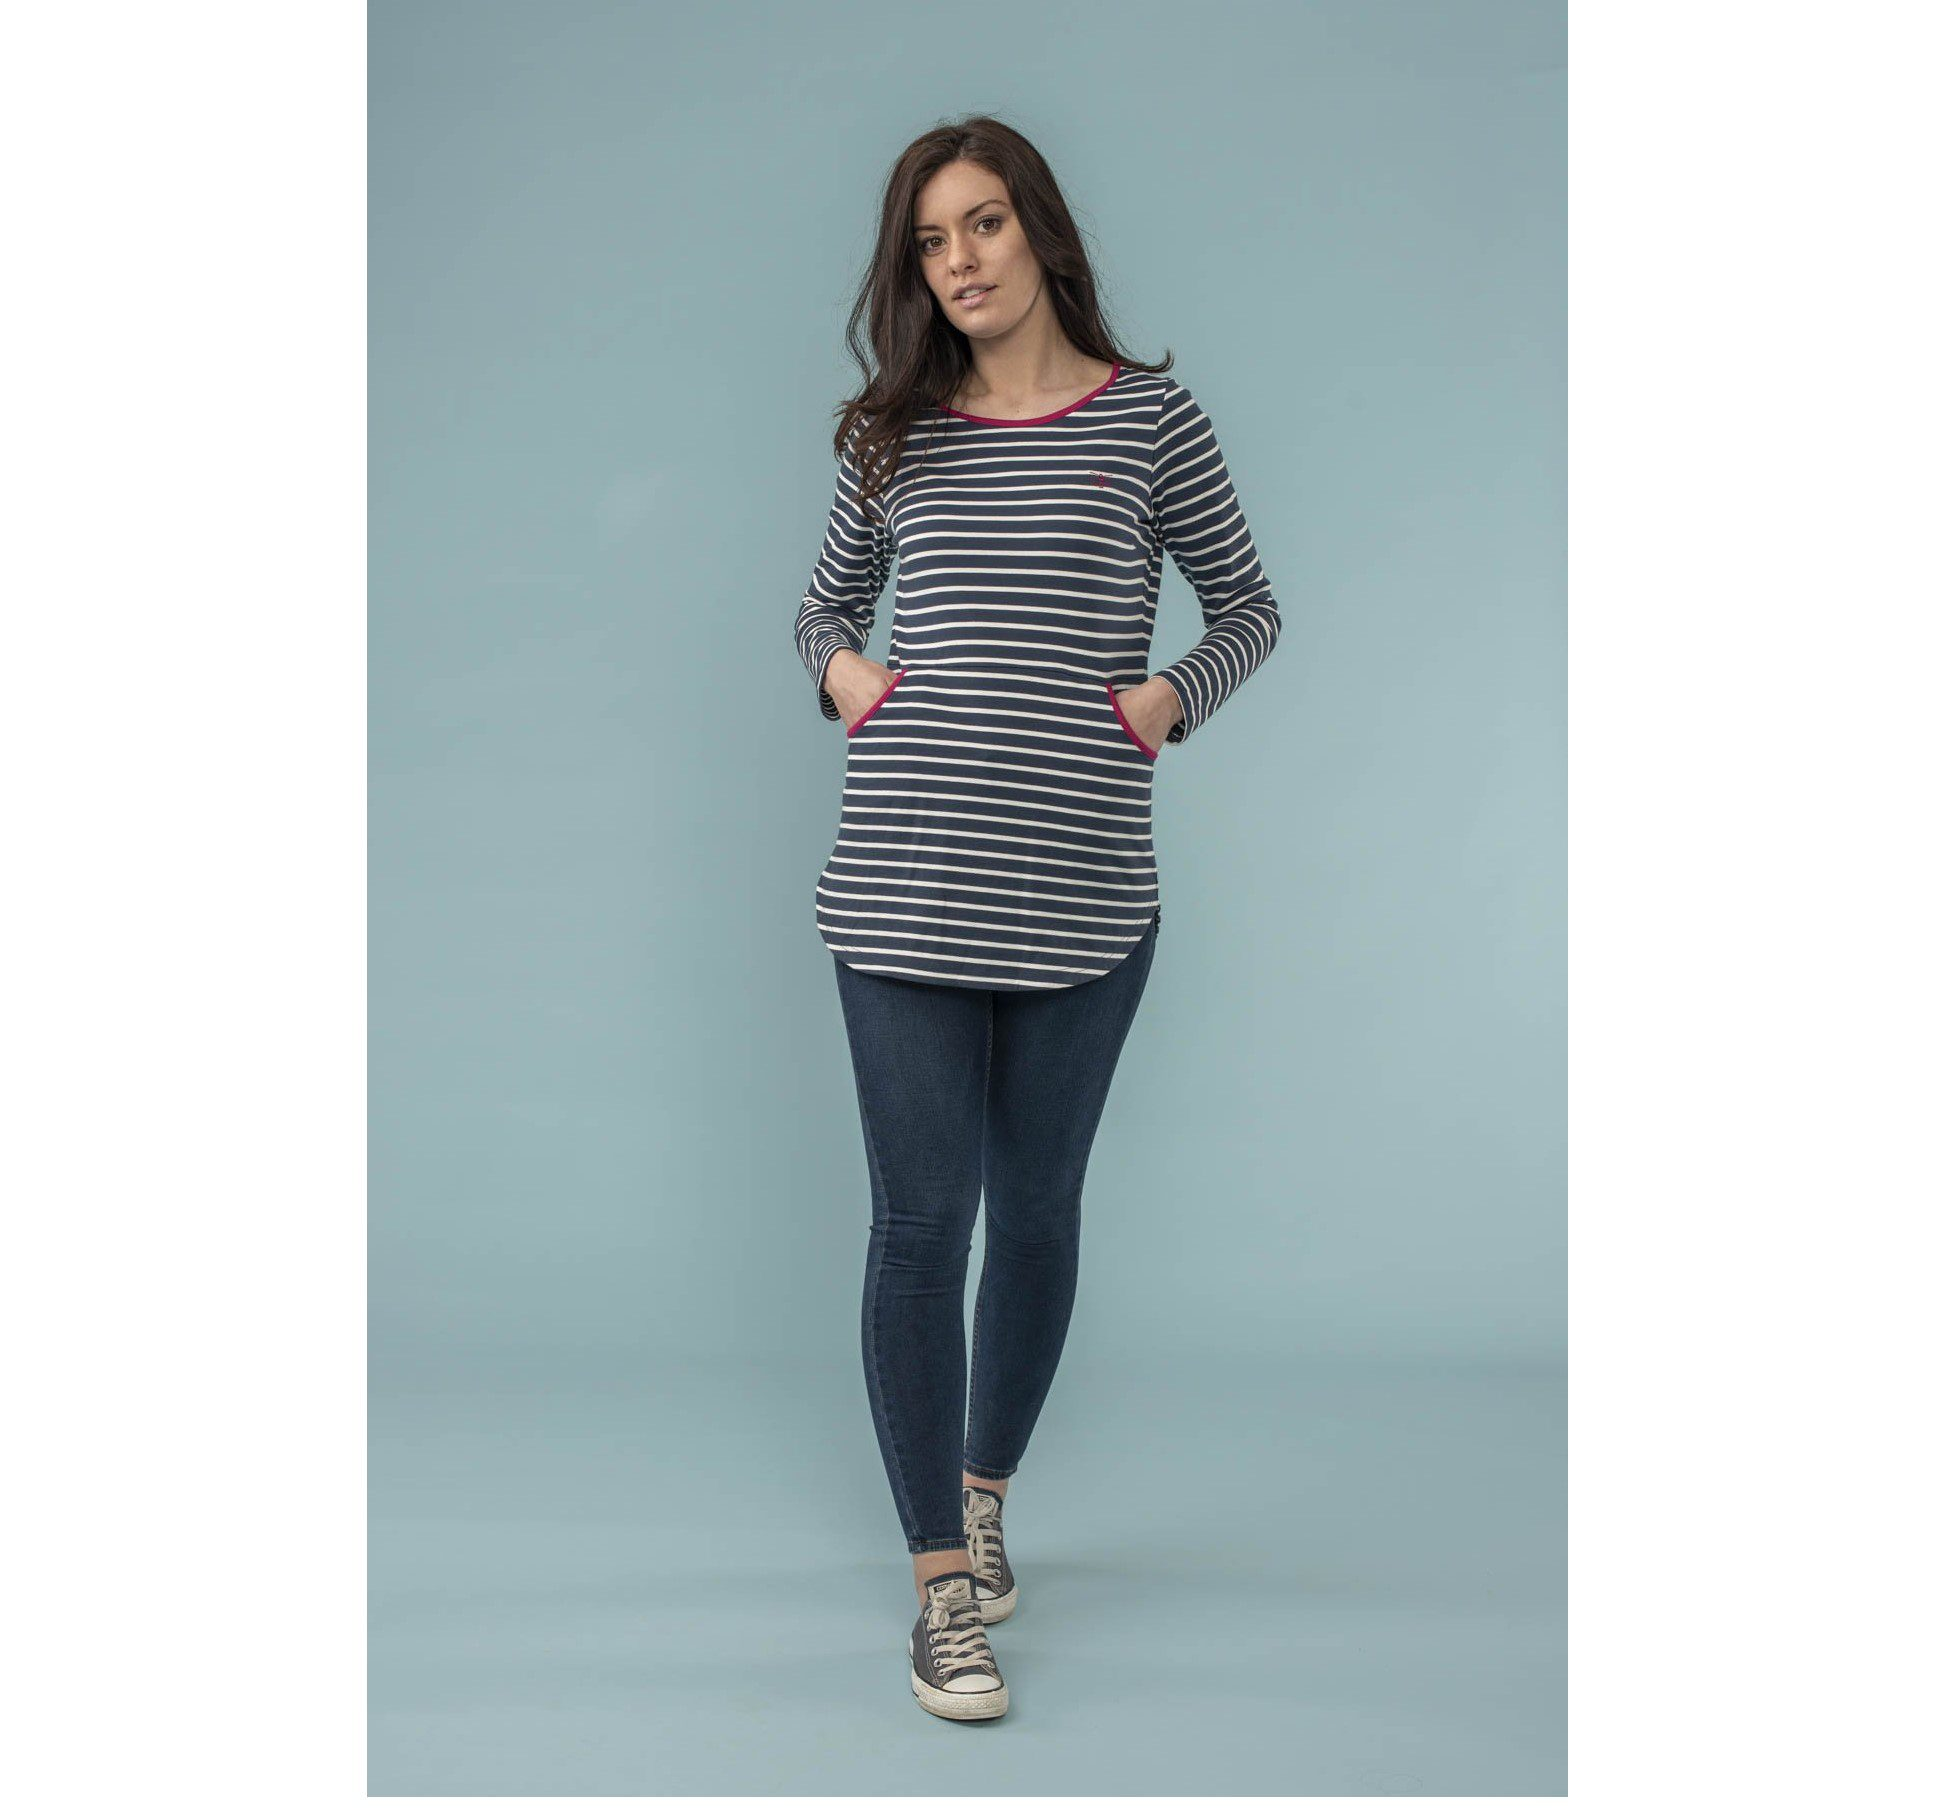 Lighthouse Coastline Tunic - Midnight Stripe